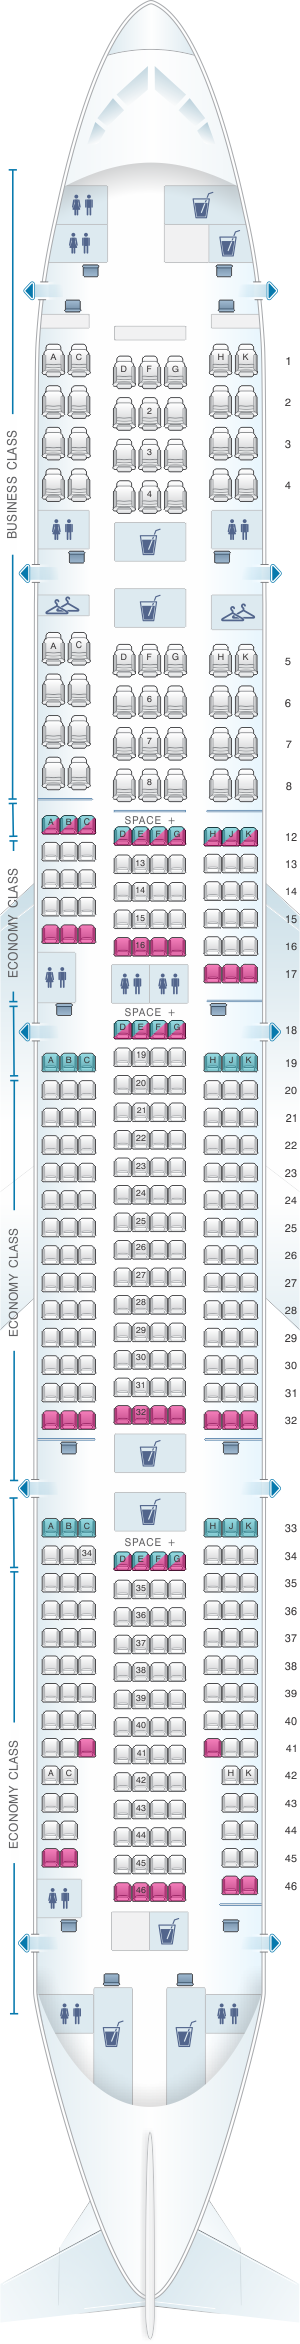 Seat map for LATAM Airlines Brasil Boeing B777 300ER V2